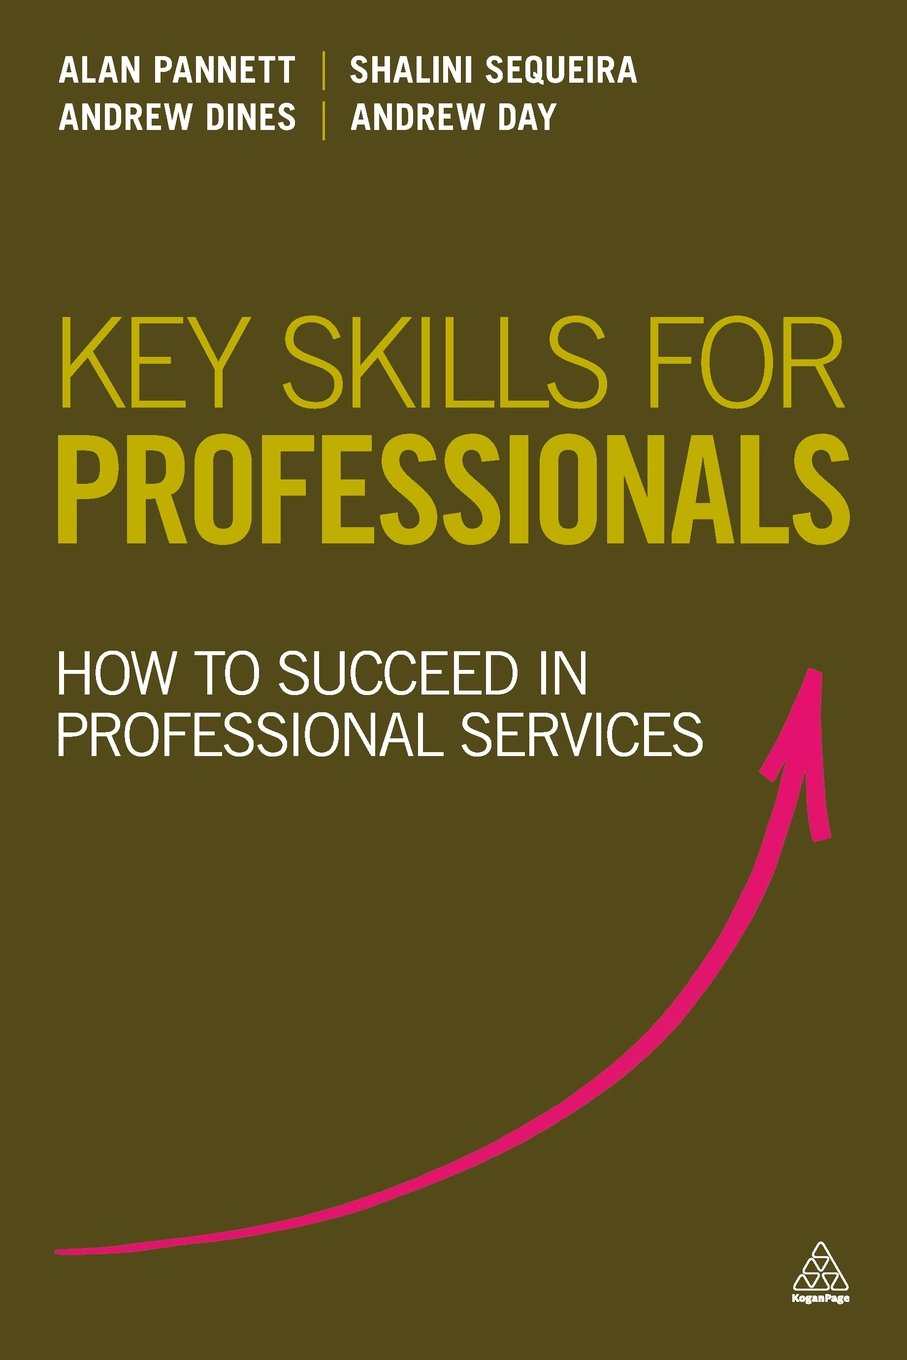 key skills for professionals how to succeed in professional key skills for professionals how to succeed in professional services amazon co uk alan pannett shalini sequeira andrew dines